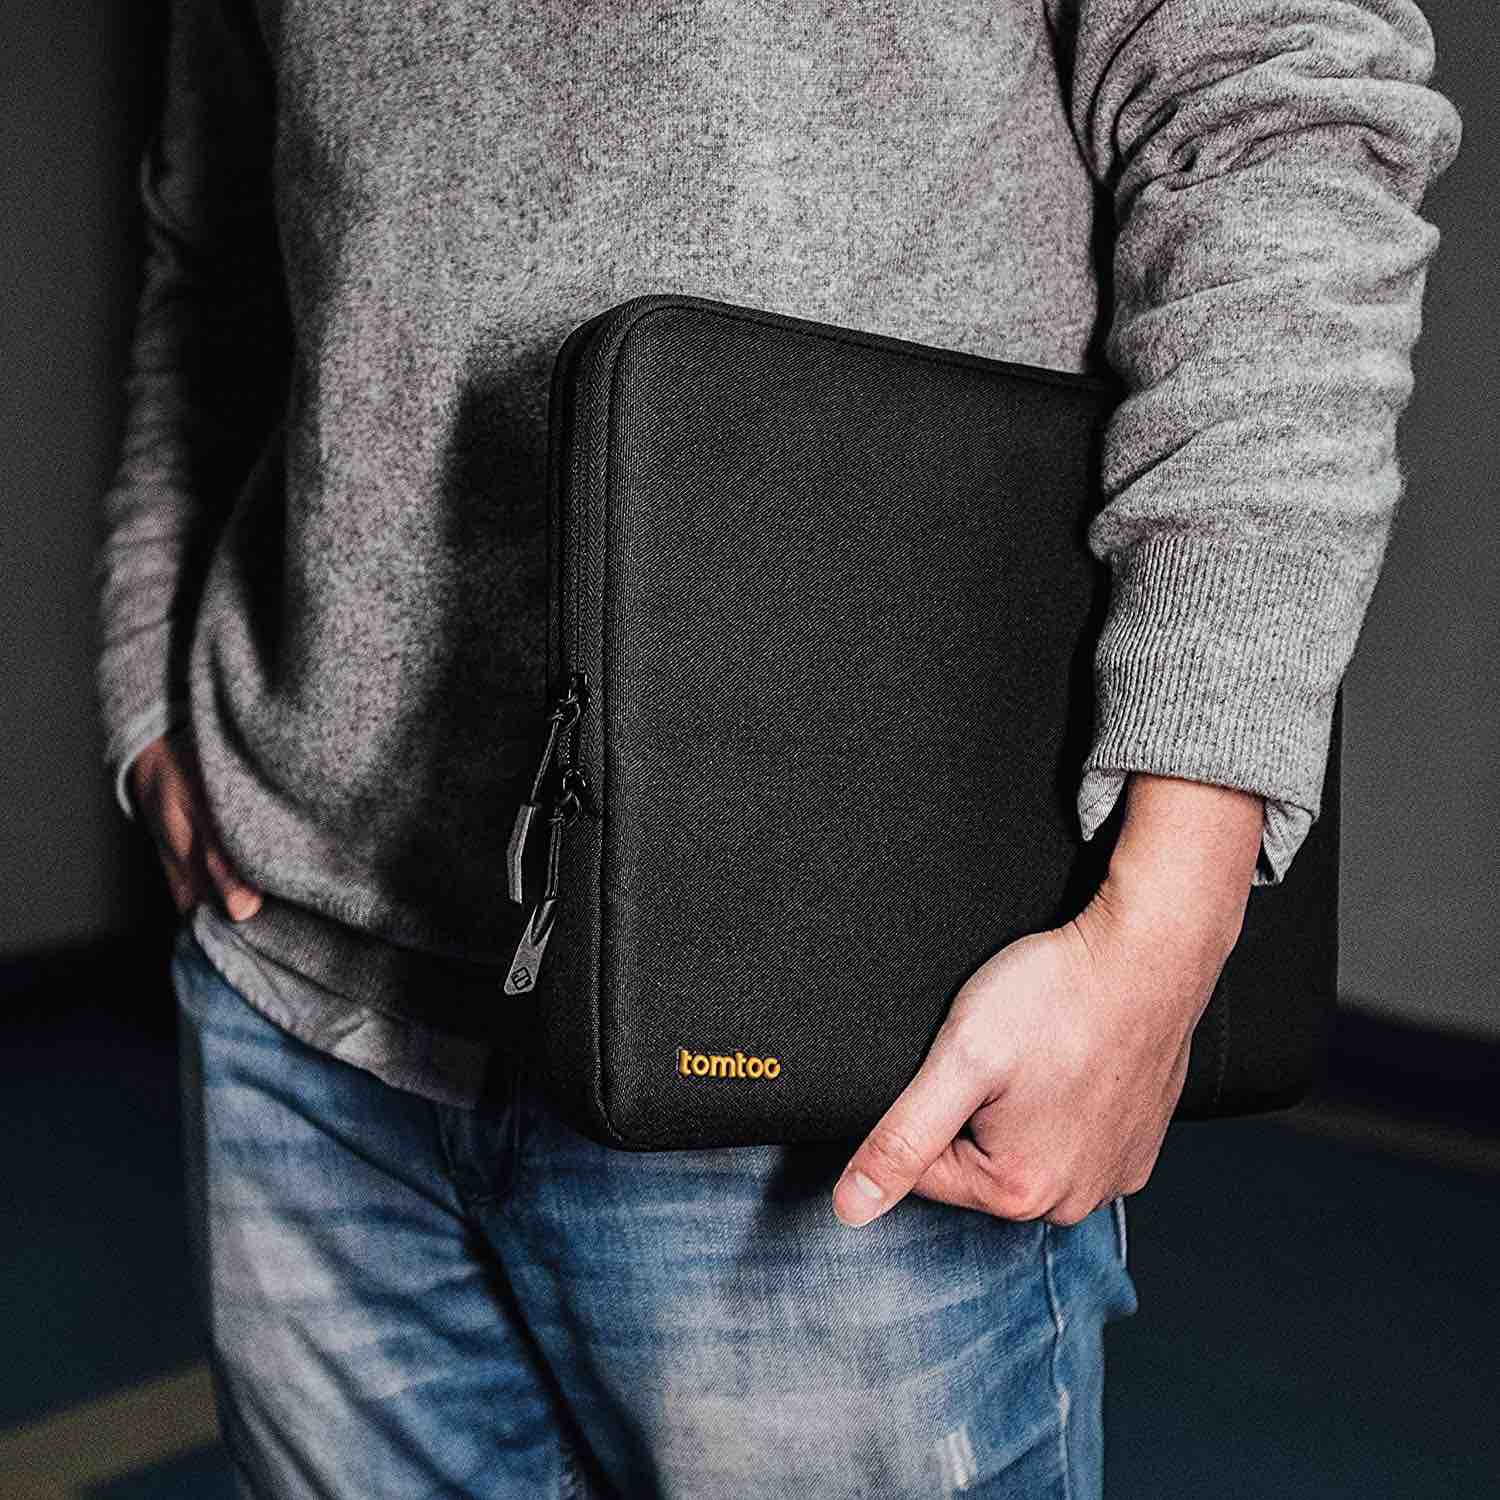 tomtoc-360-degree-protective-laptop-sleeve-2